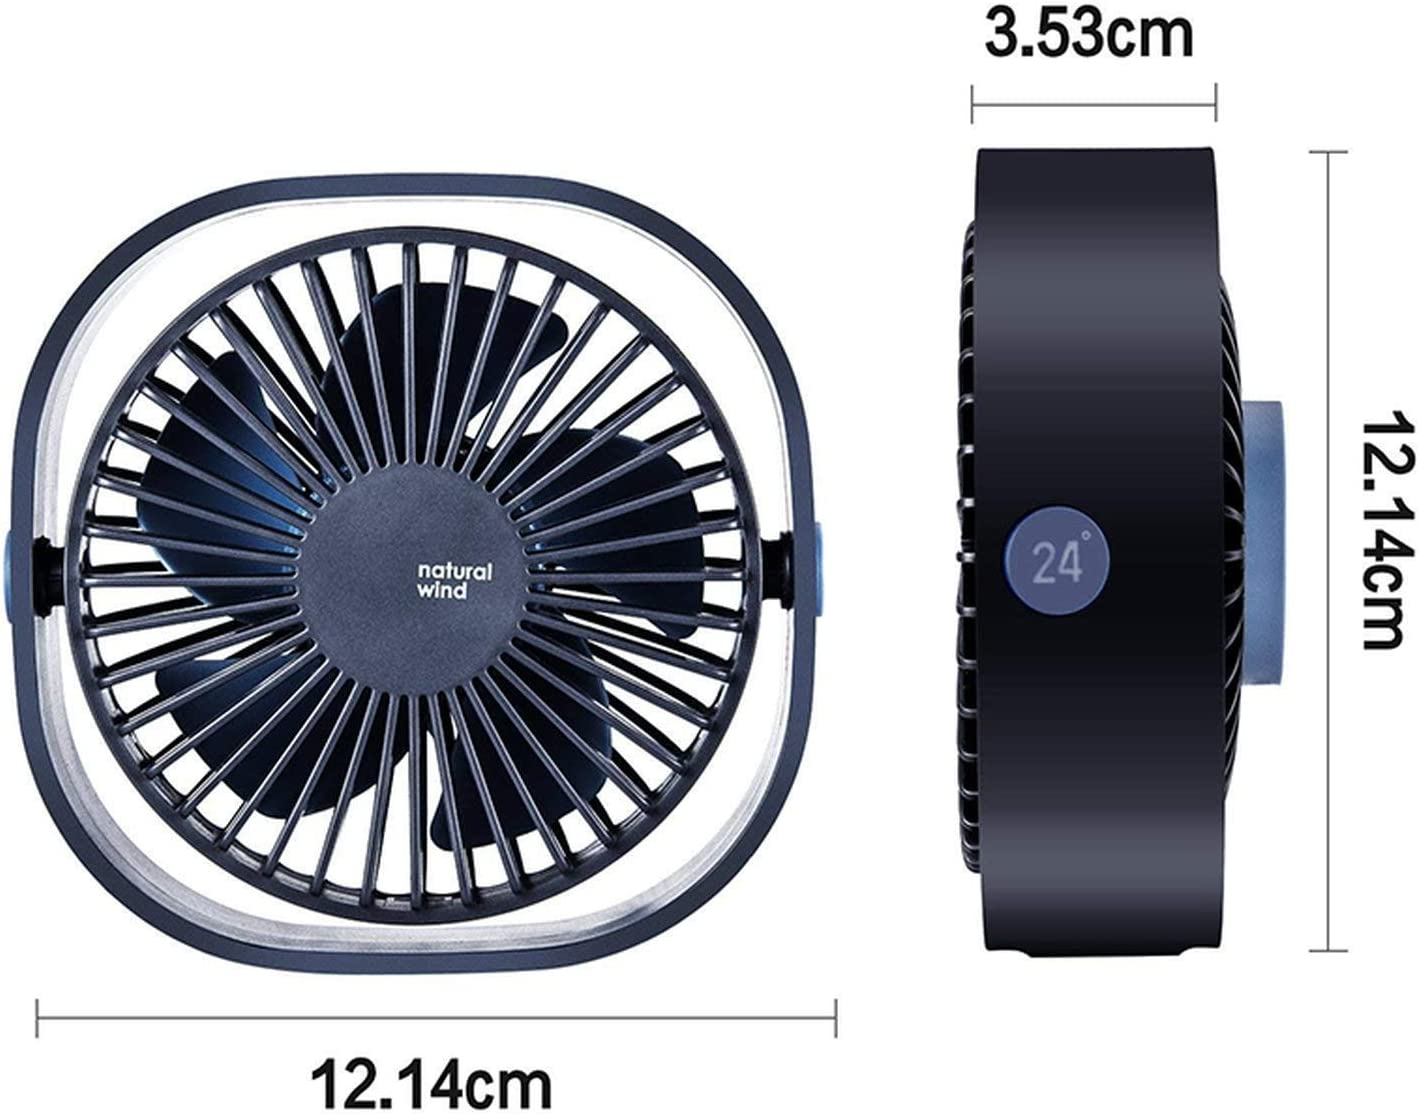 3 Speed Mini USB Desktop Fan Personal Portable Cooling Fan with 360 Rotation Adjustable Angle for Office Household Traveling,Black